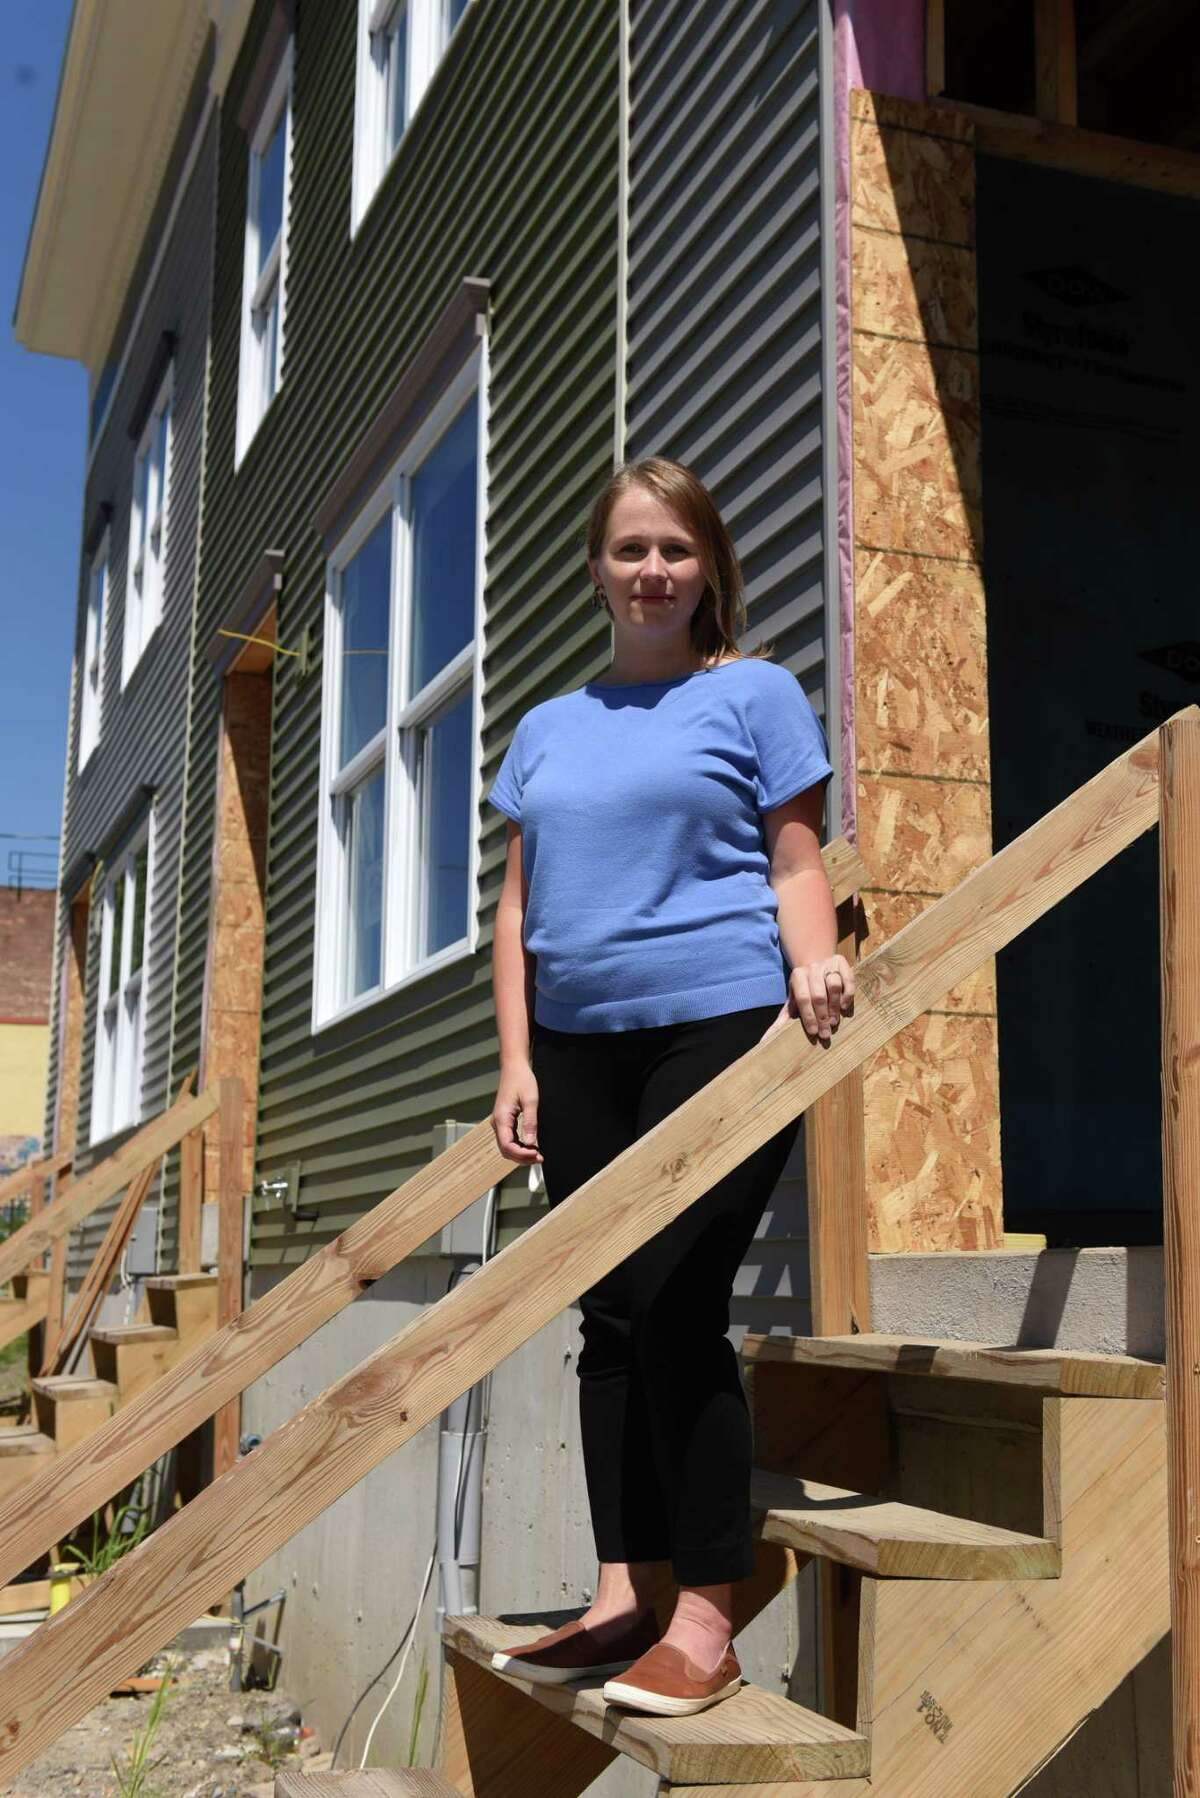 Christine Schudde, executive director of Habitat for Humanity of the Capital District, is pictured on Friday, Aug. 21, 2020, outside an Orange Street Habitat house under construction in Albany, N.Y. (Will Waldron/Times Union)